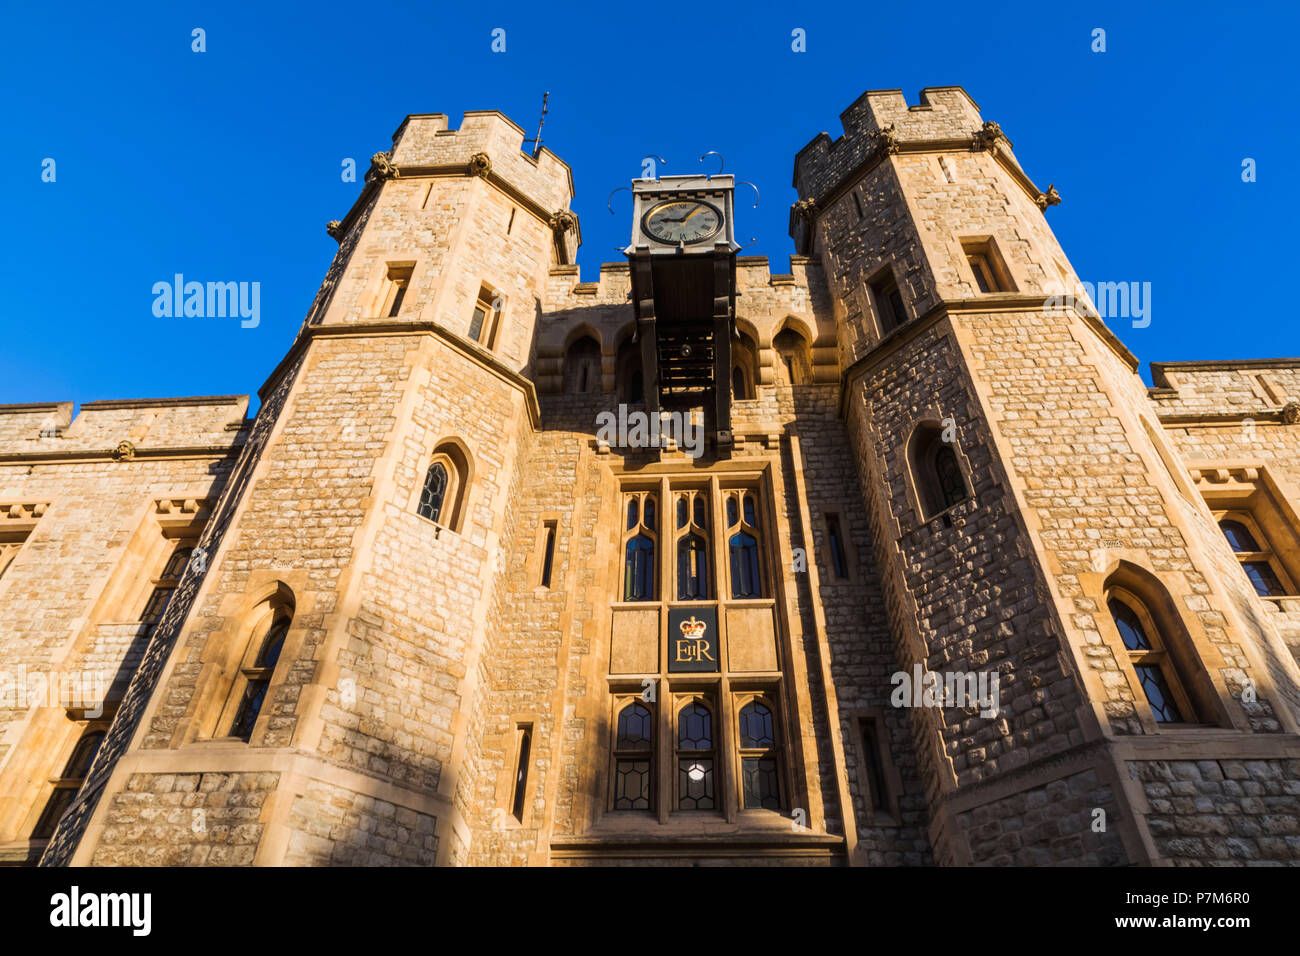 England, London, Tower of London, The Jewel House - Stock Image